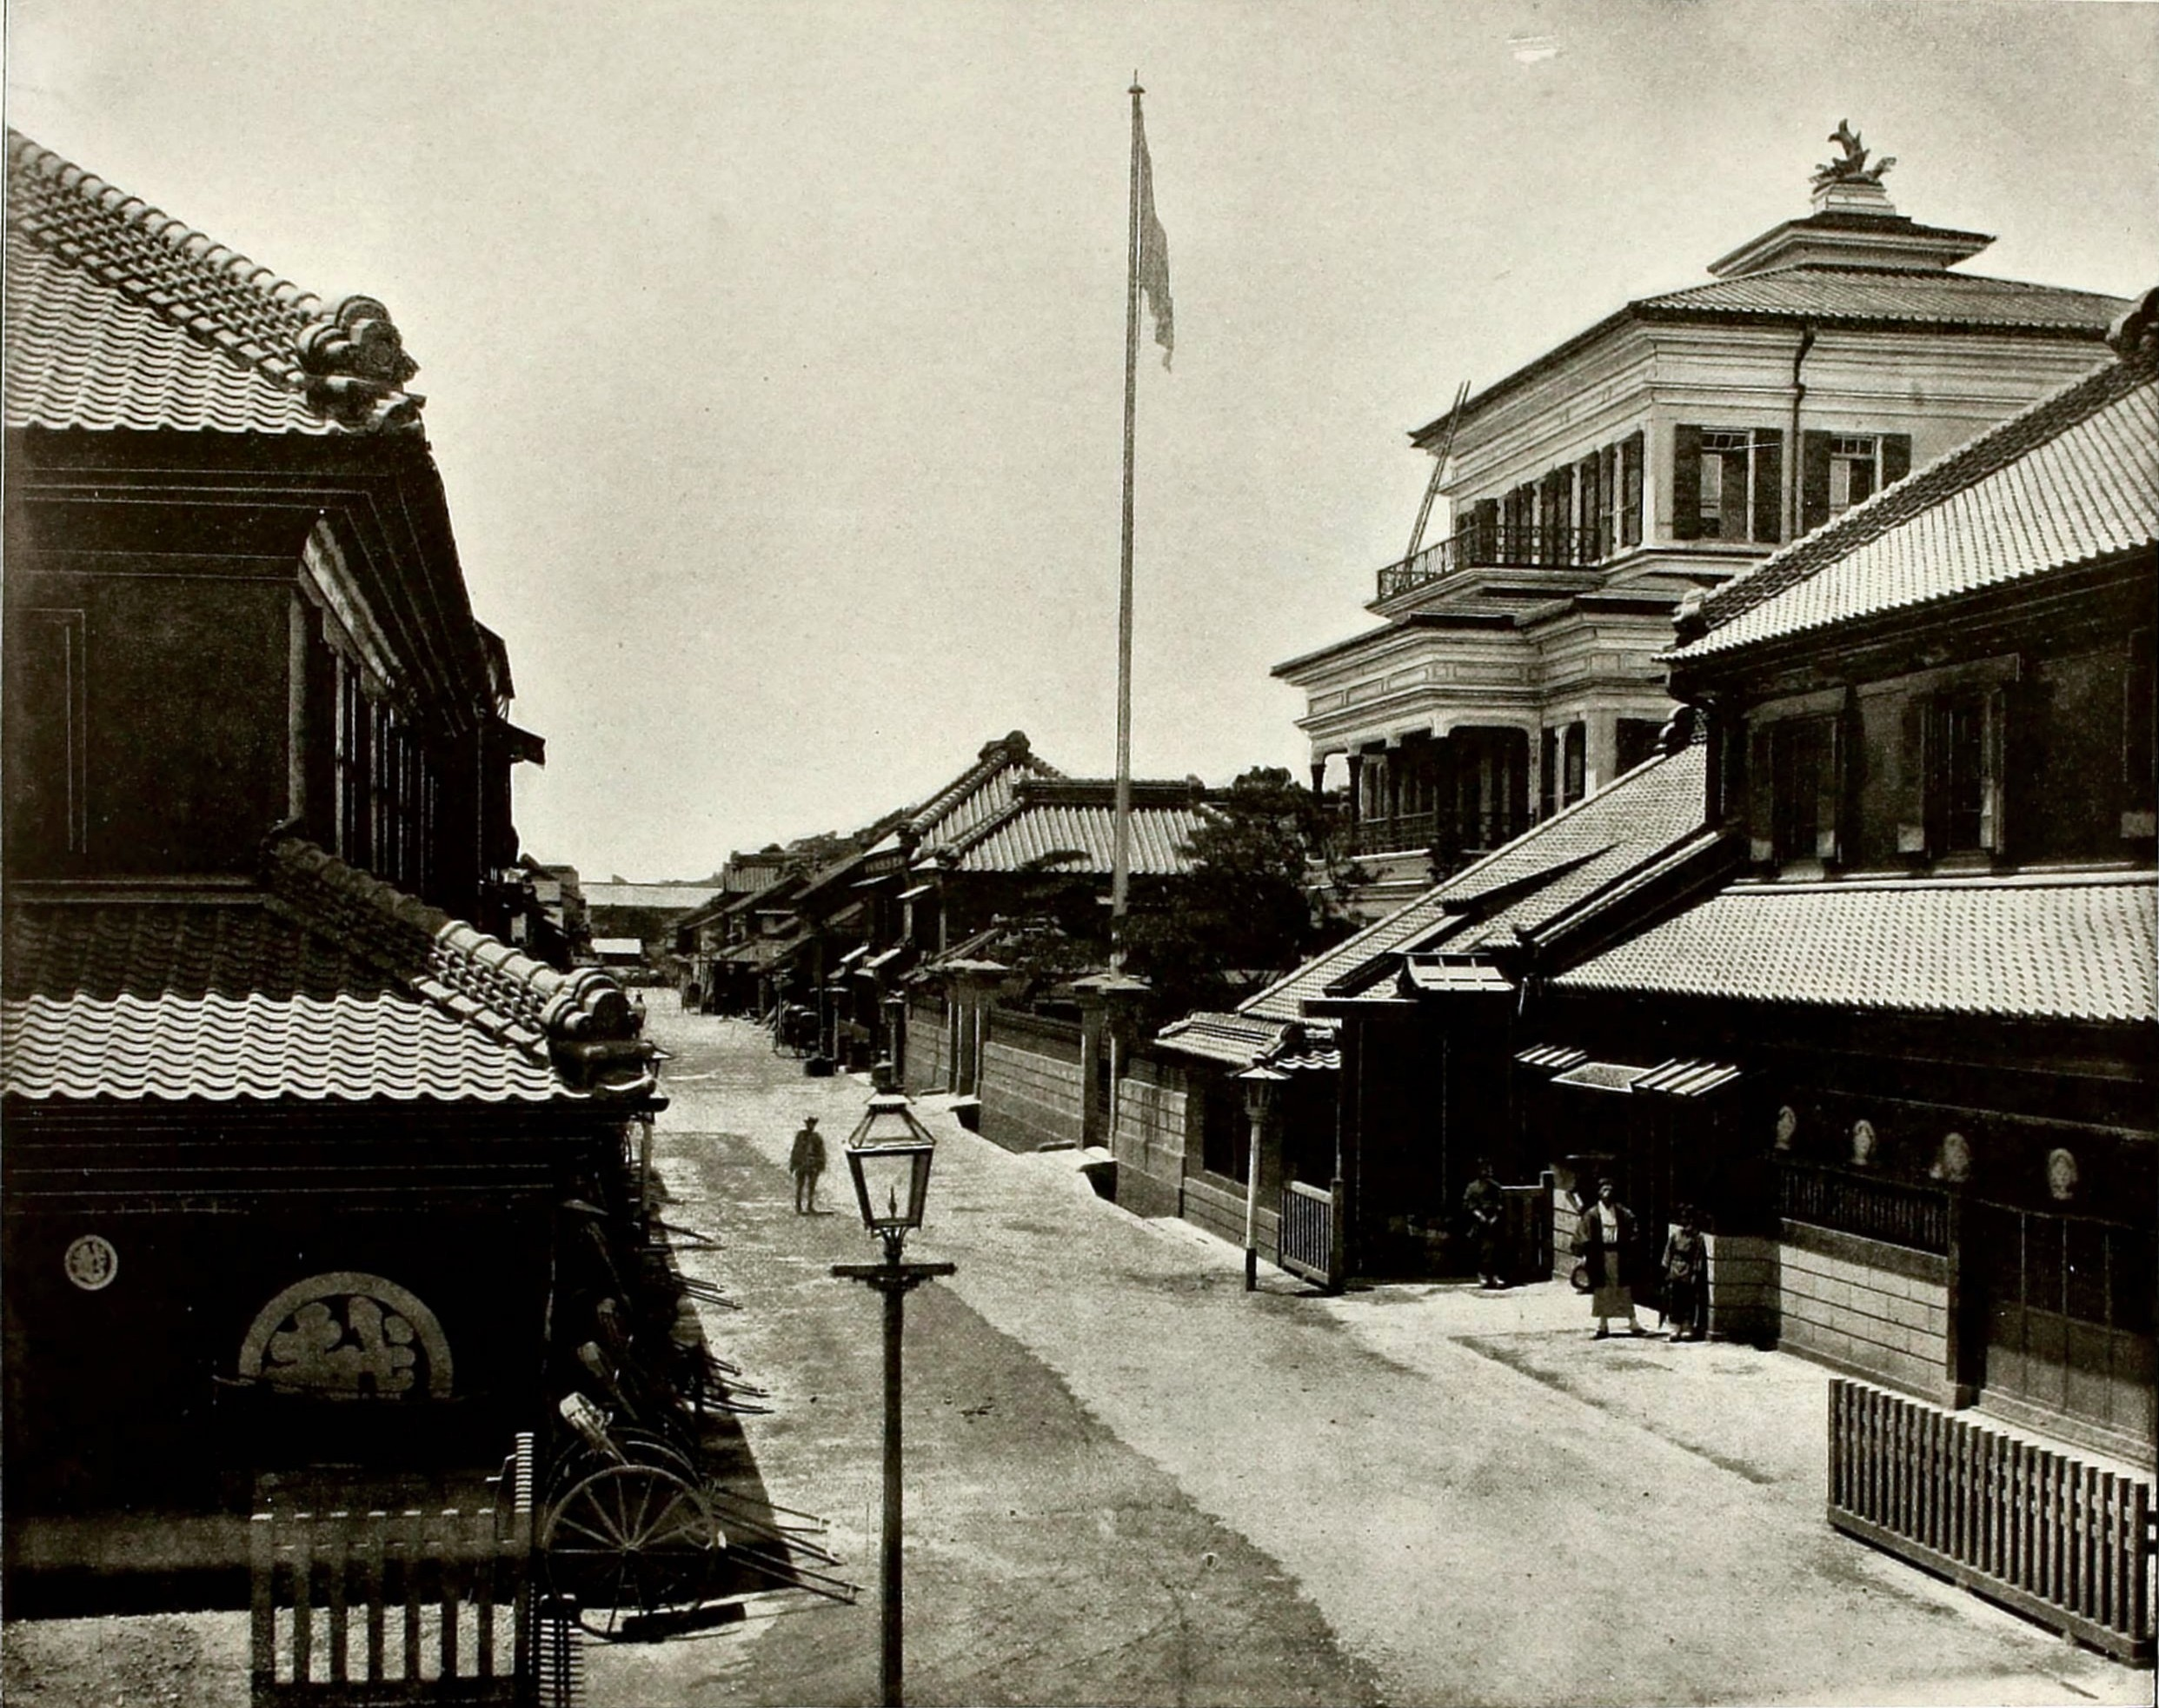 Street in Tokyo Japan about 1892